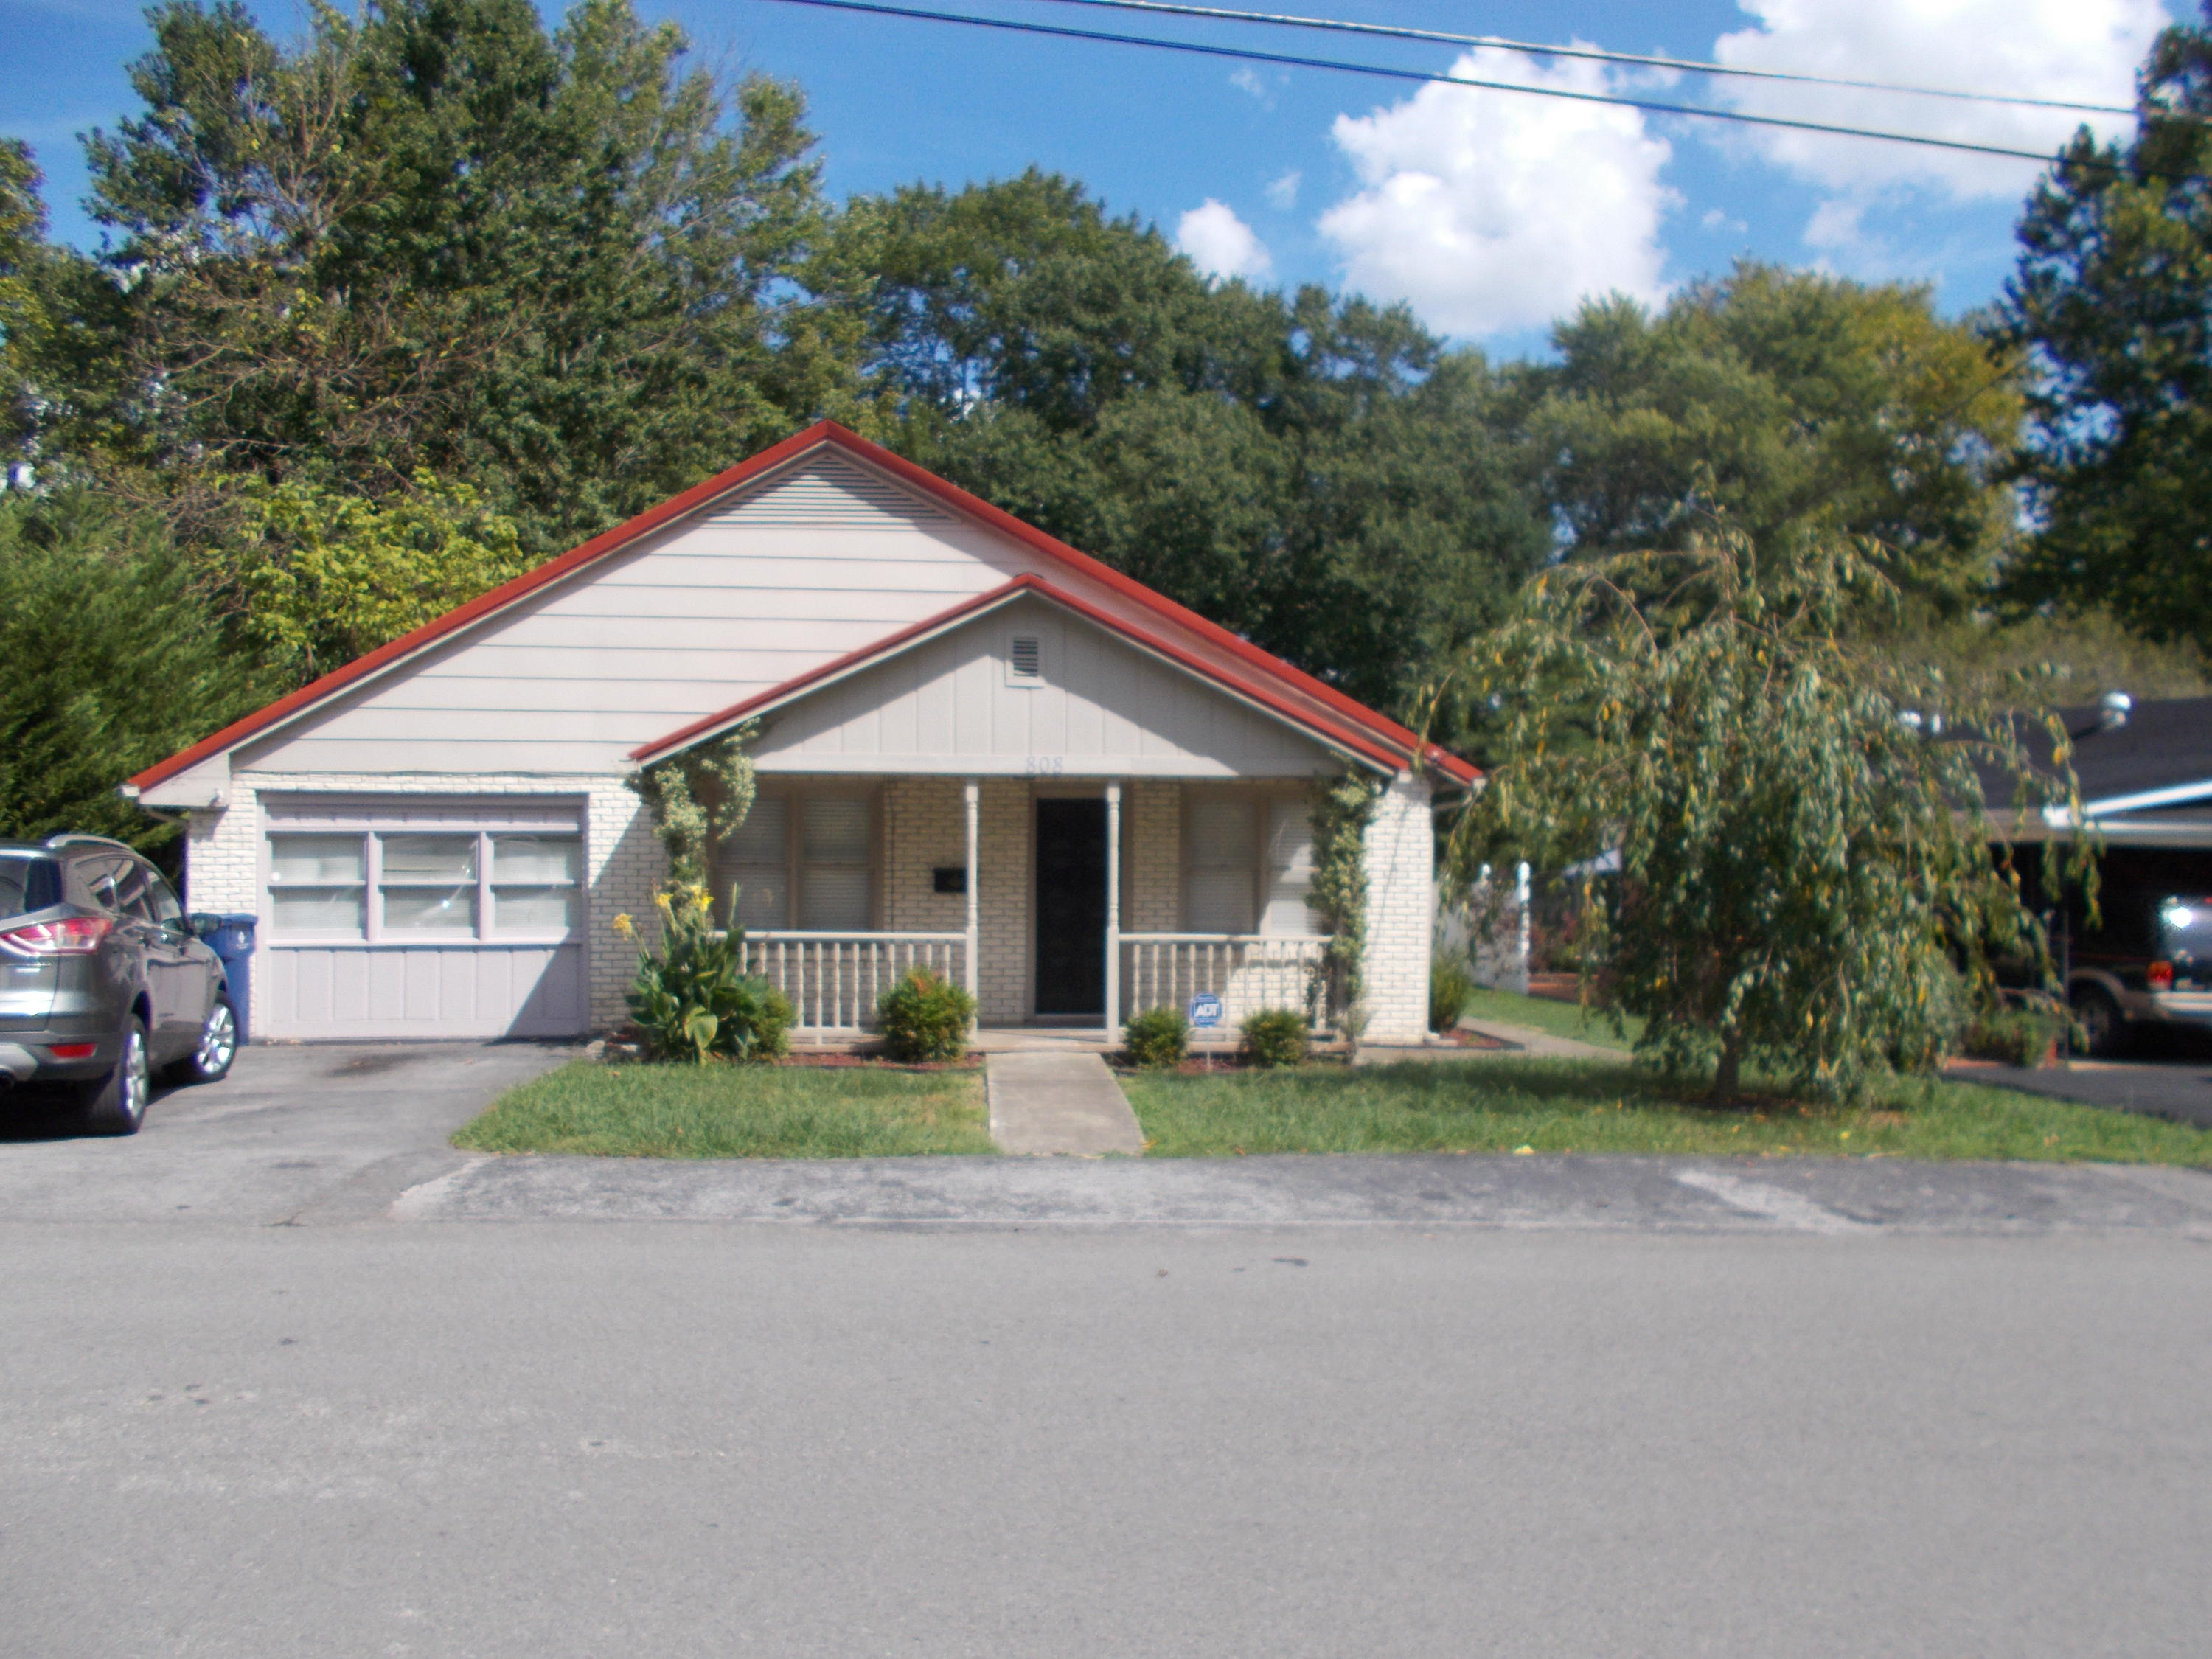 808 N 28th St, Middlesboro, KY 40965